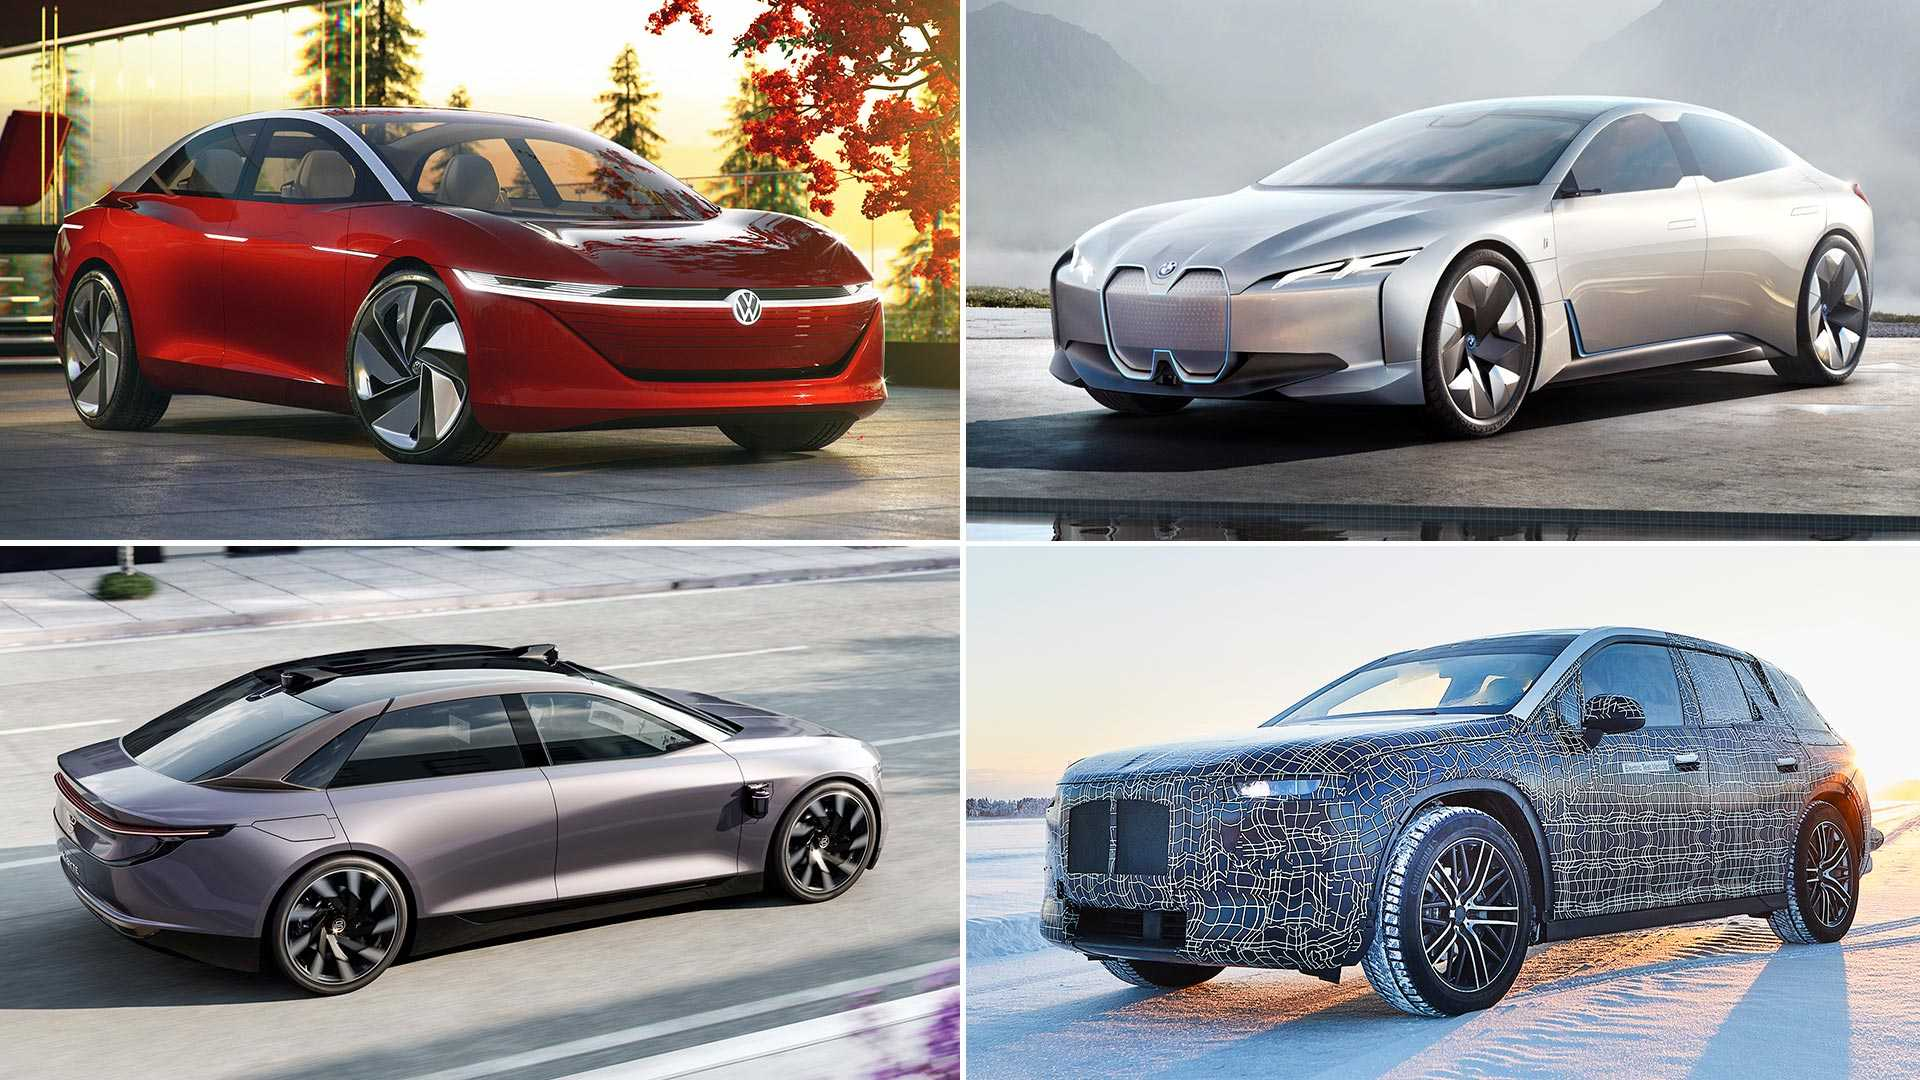 Best Used Electric Cars 2021 2021 Electric Vehicles: The Future Generation of EVs